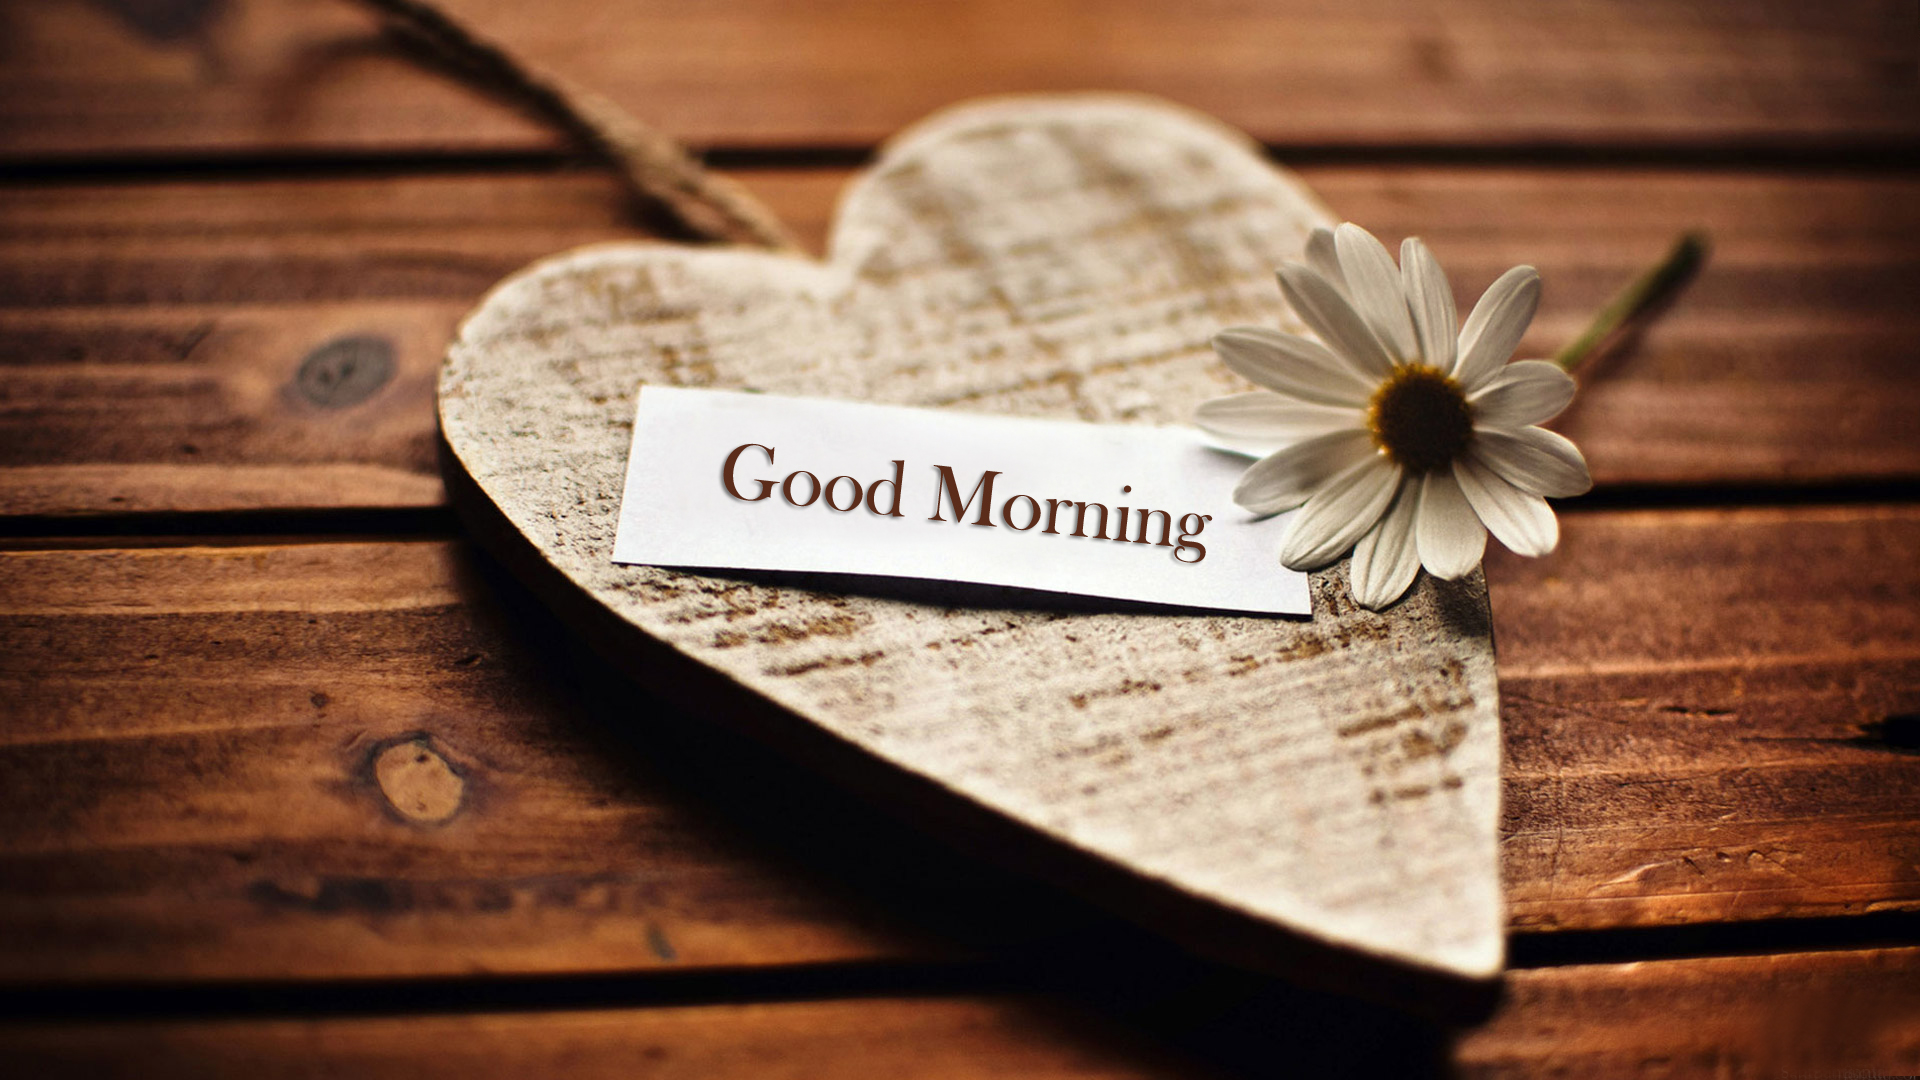 Love Good Morning Image Wallpaper : Good Morning - Images Details - UK